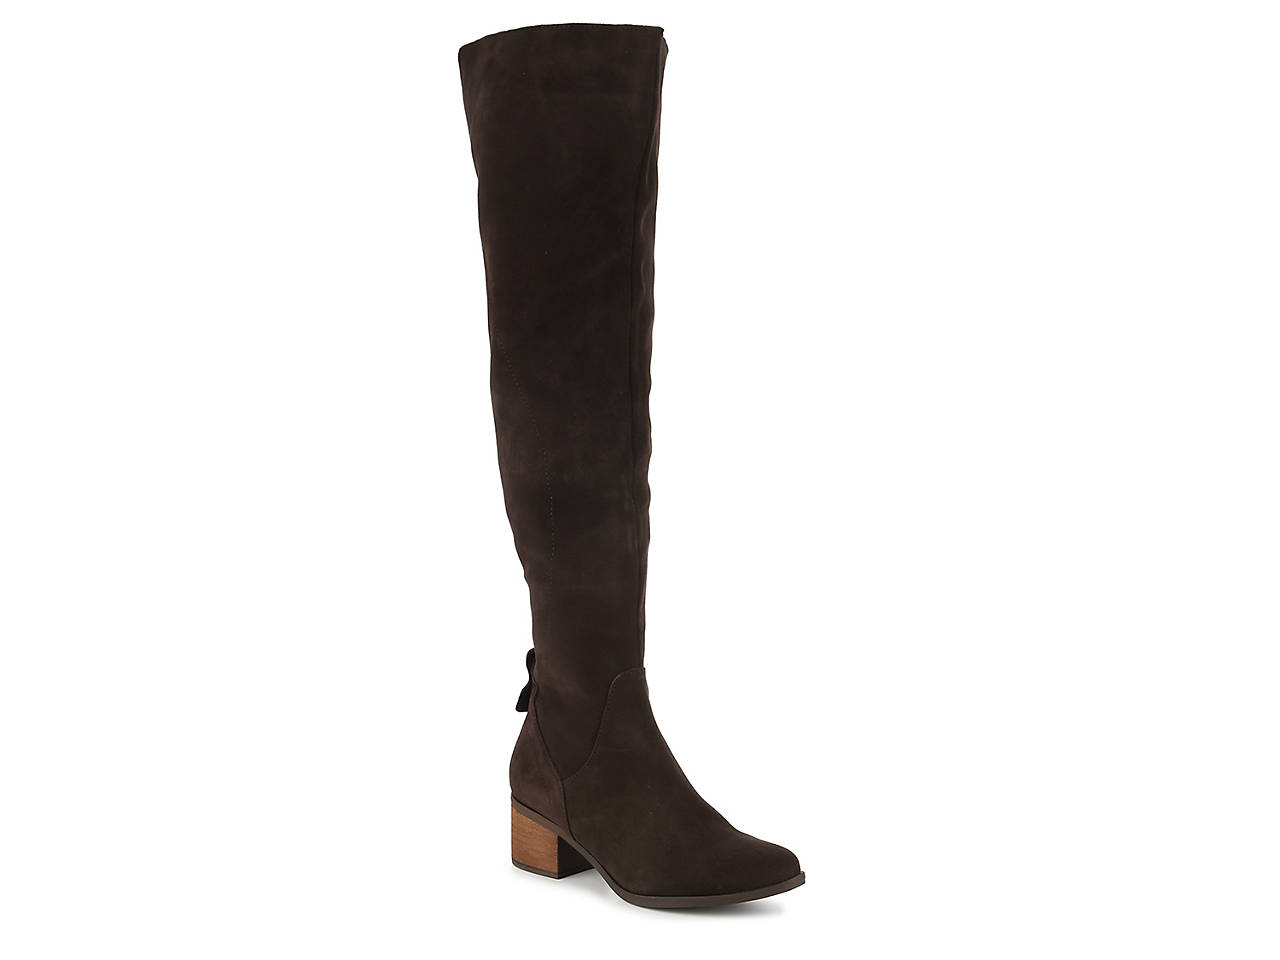 0d9b8fa4d7f Steve Madden Purly Over The Knee Boot Women s Shoes